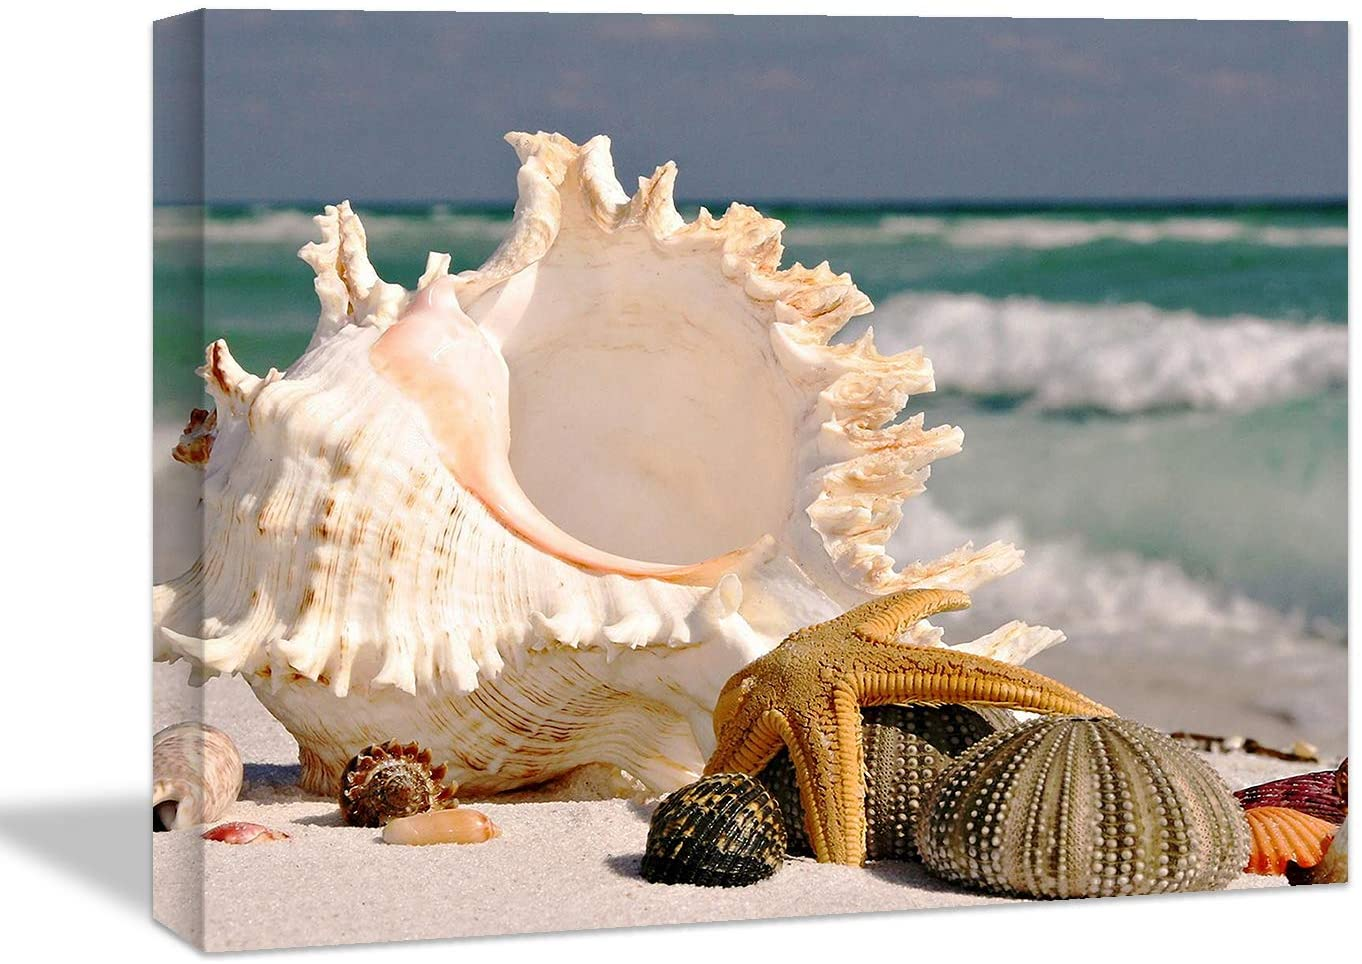 Looife Ocean Theme Canvas Wall Art, 24x16 Inch Conch Seashell on Beach Picture Prints Wall Decor, Nature Scenery Painting Wall Deco Ready to Hang